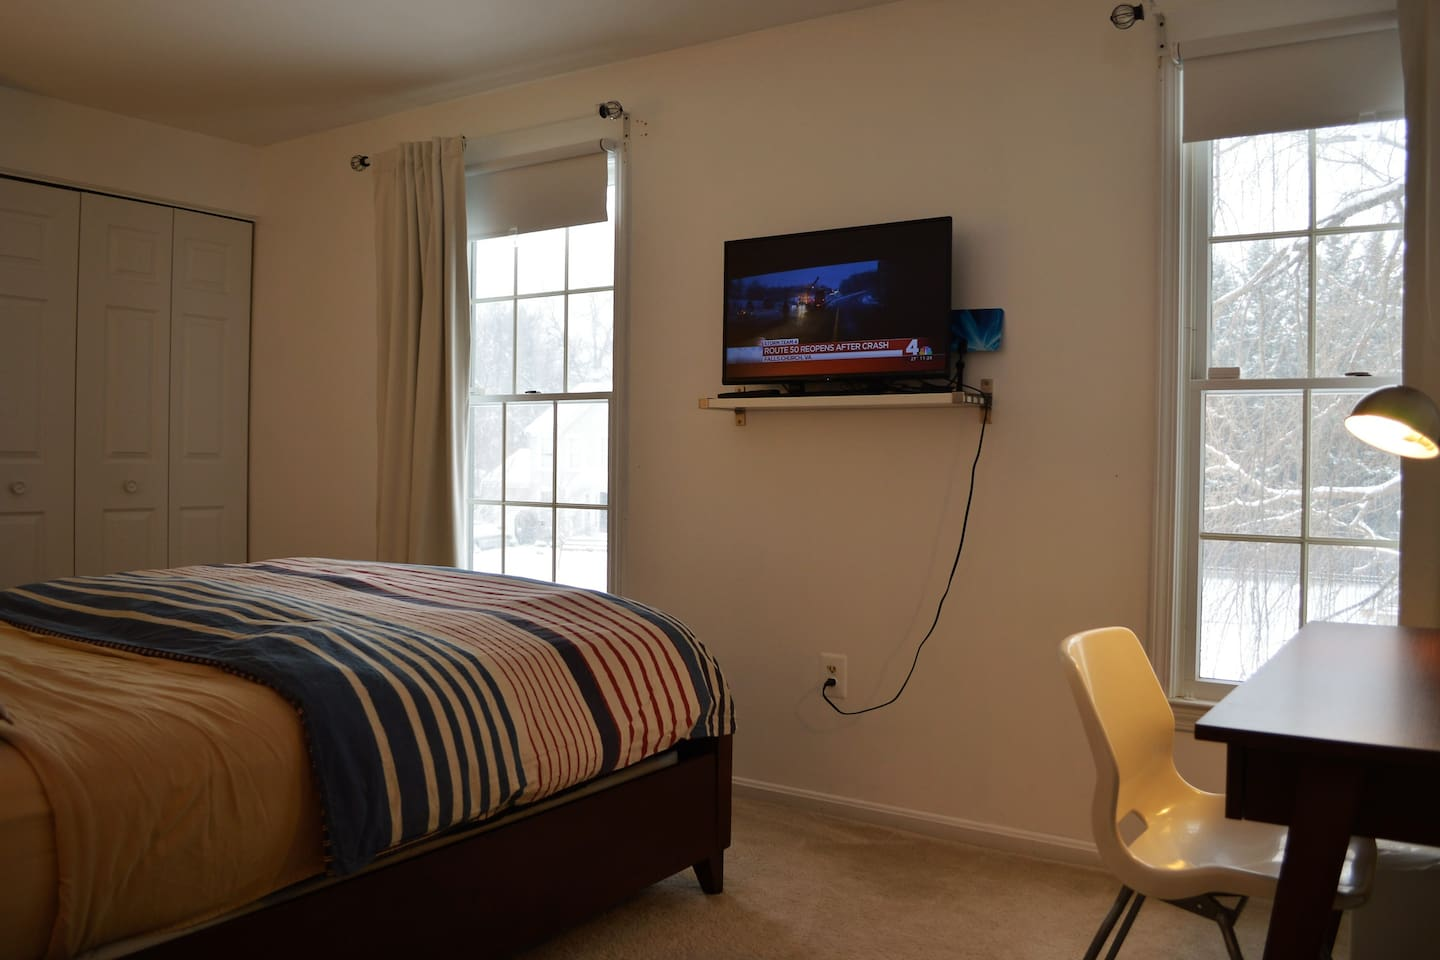 A modern bright clean room with two windows, A Flat-screen TV equipped with Chromecast TV and a comfortable working desk.